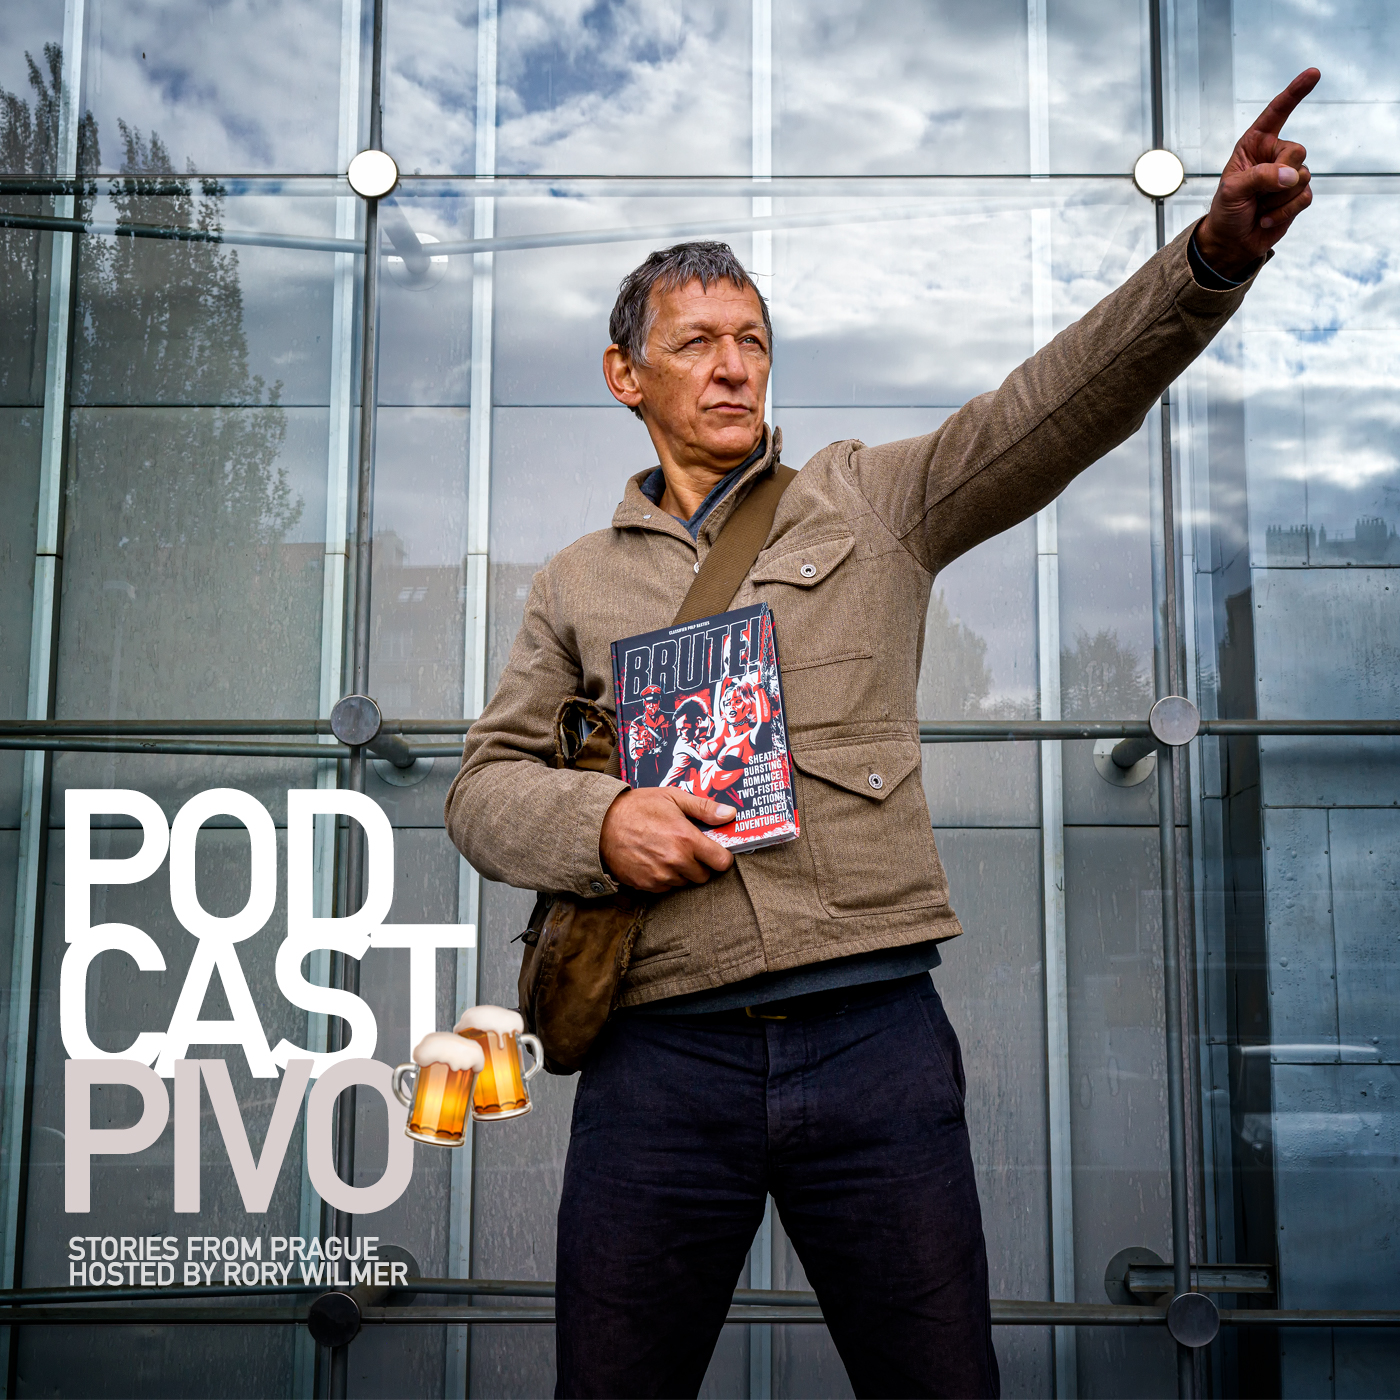 Aidan Hughes on Podcast Pivo